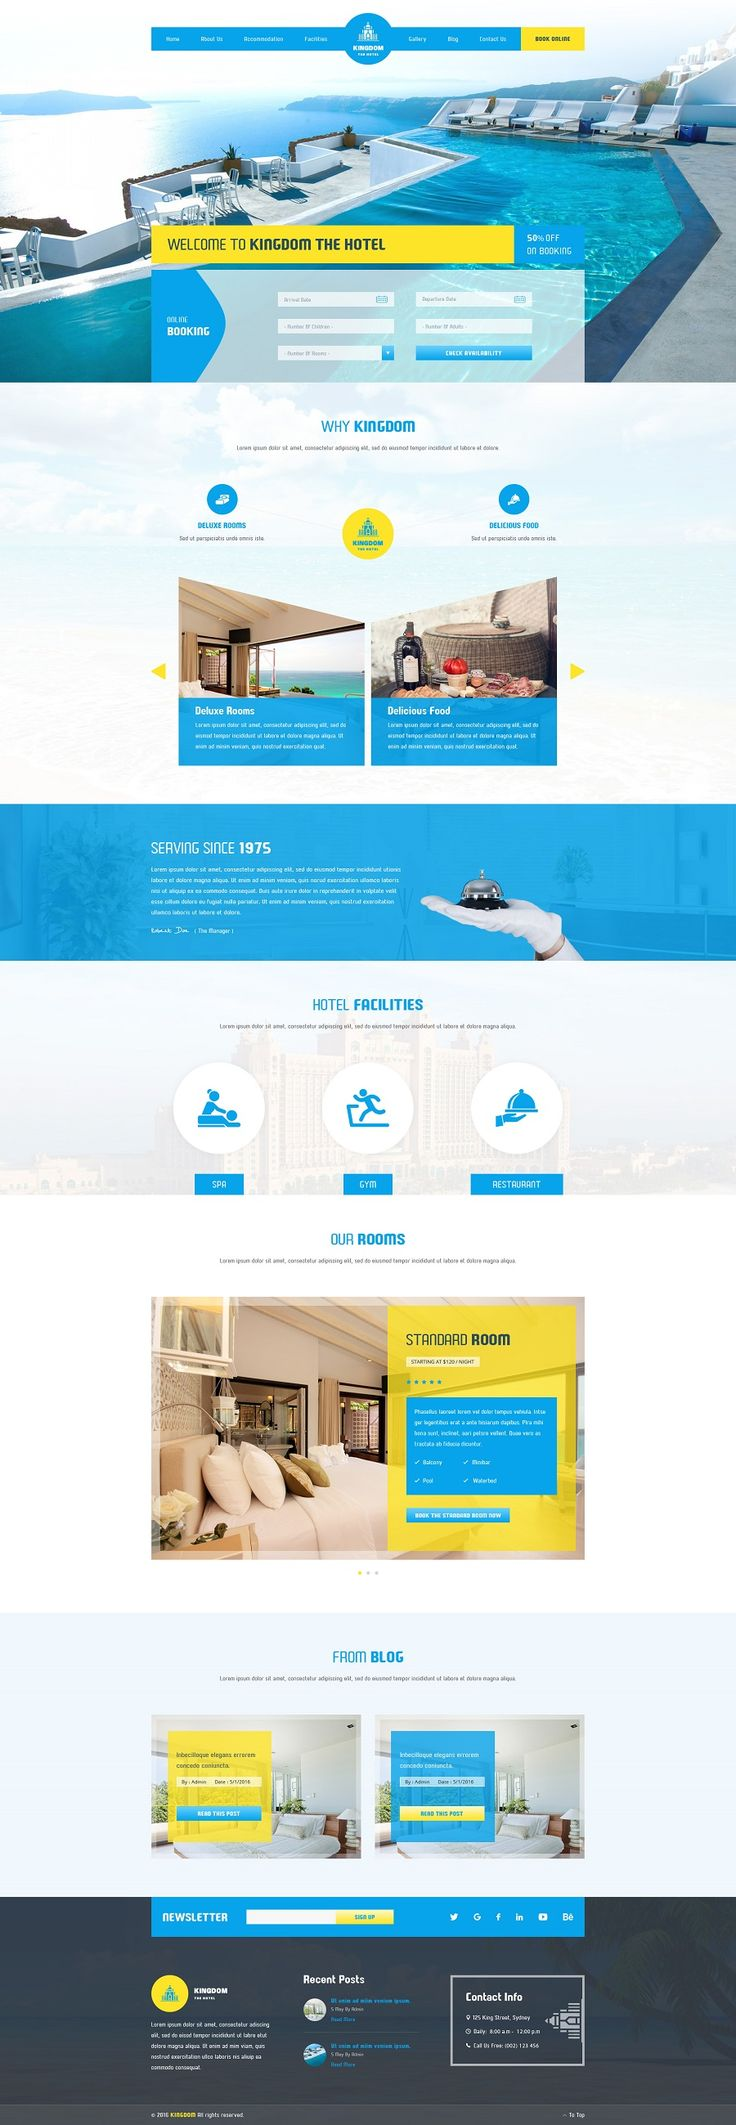 Hotel Website Themes #DESIGNS #WORDPRESS  check out http://www.imedia.click for more awesome info on how to build your Amazing wordpress website